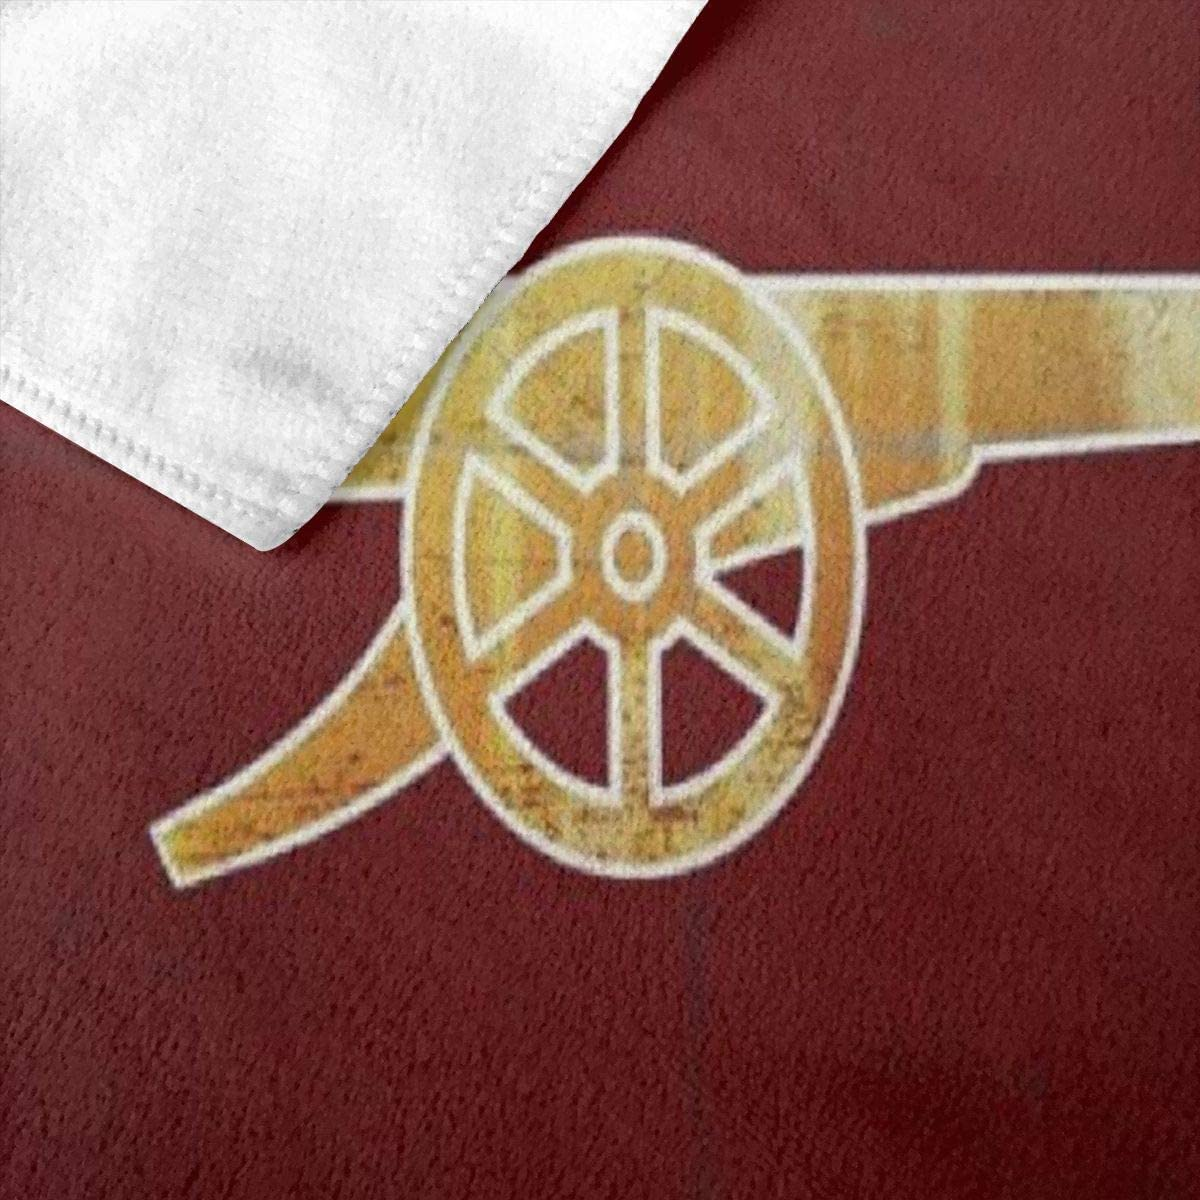 N//A Arsenal FC The Gunners Beach Towel Bath Towel Maximum Softness /& Absorbency for Daily Use Outdoor Sports Travel Swim